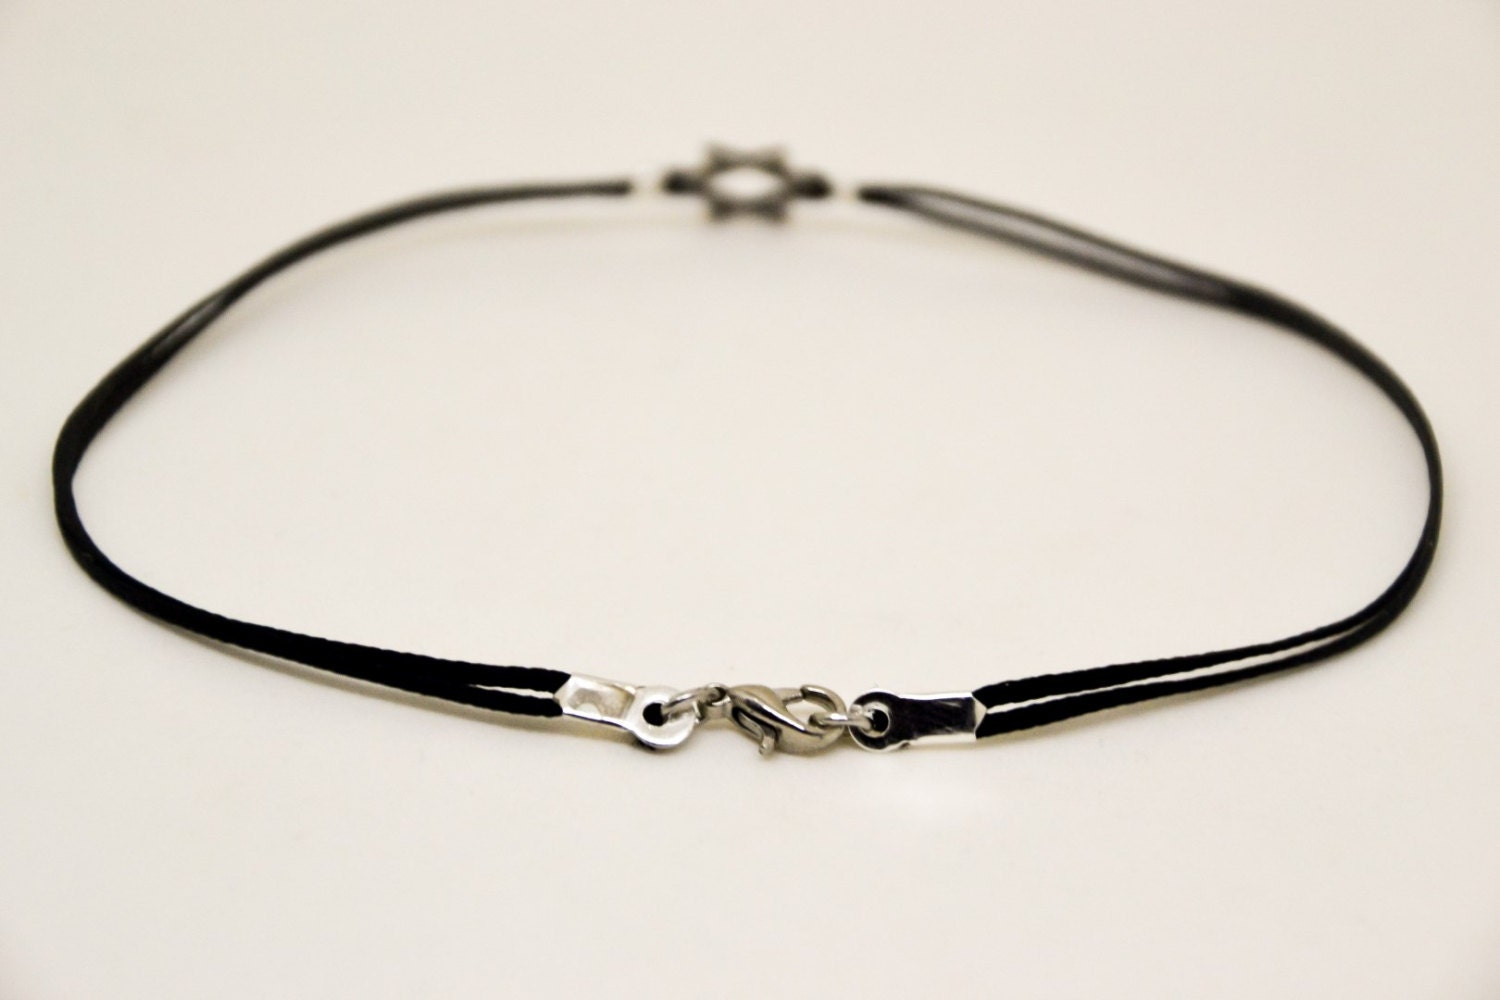 bracelet de cheville pour homme bracelet de cheville pour. Black Bedroom Furniture Sets. Home Design Ideas